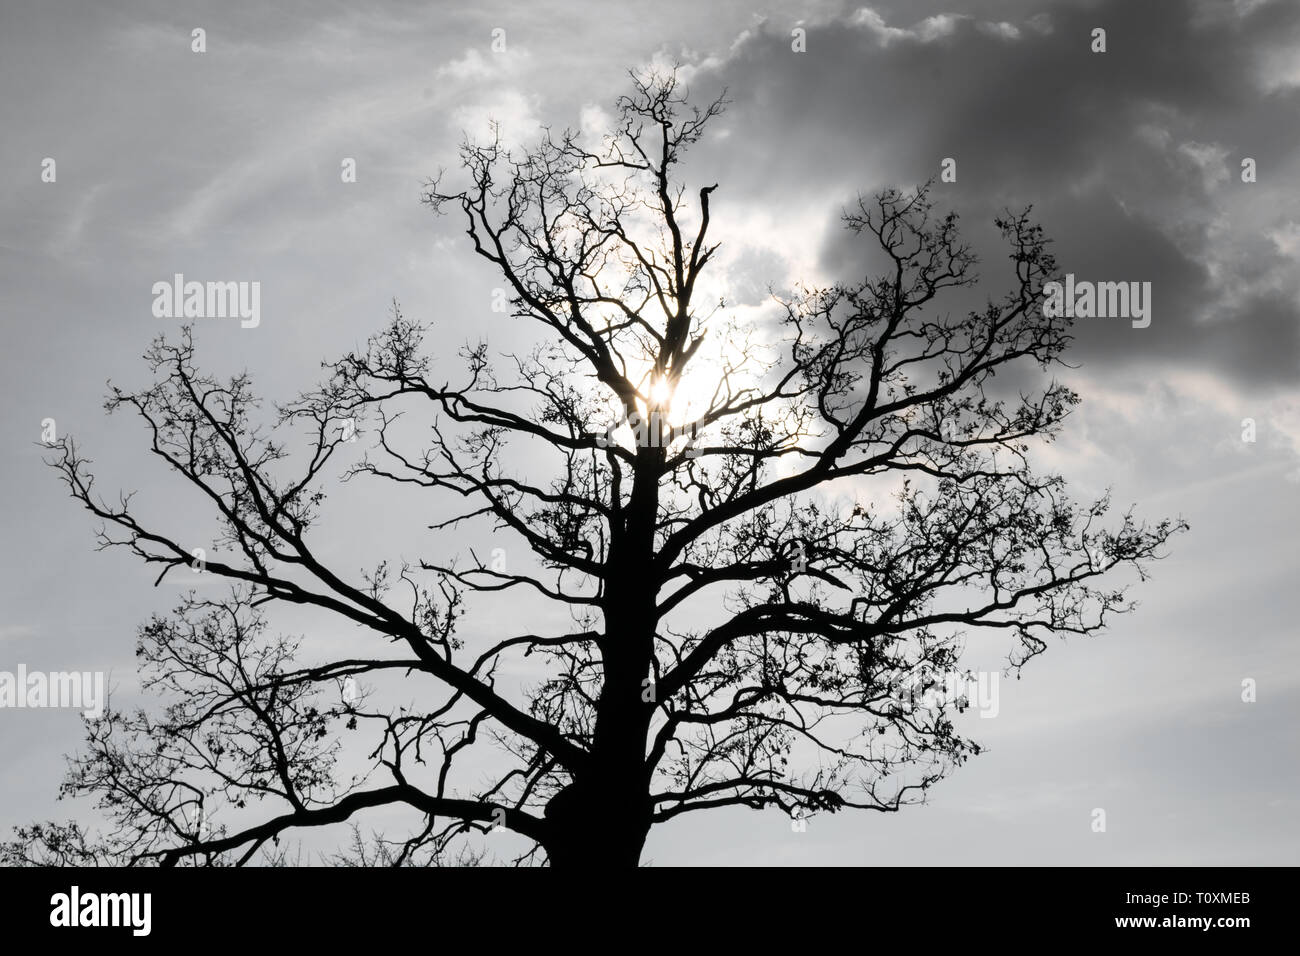 Silhouette of a big oak tree against sun - Stock Image